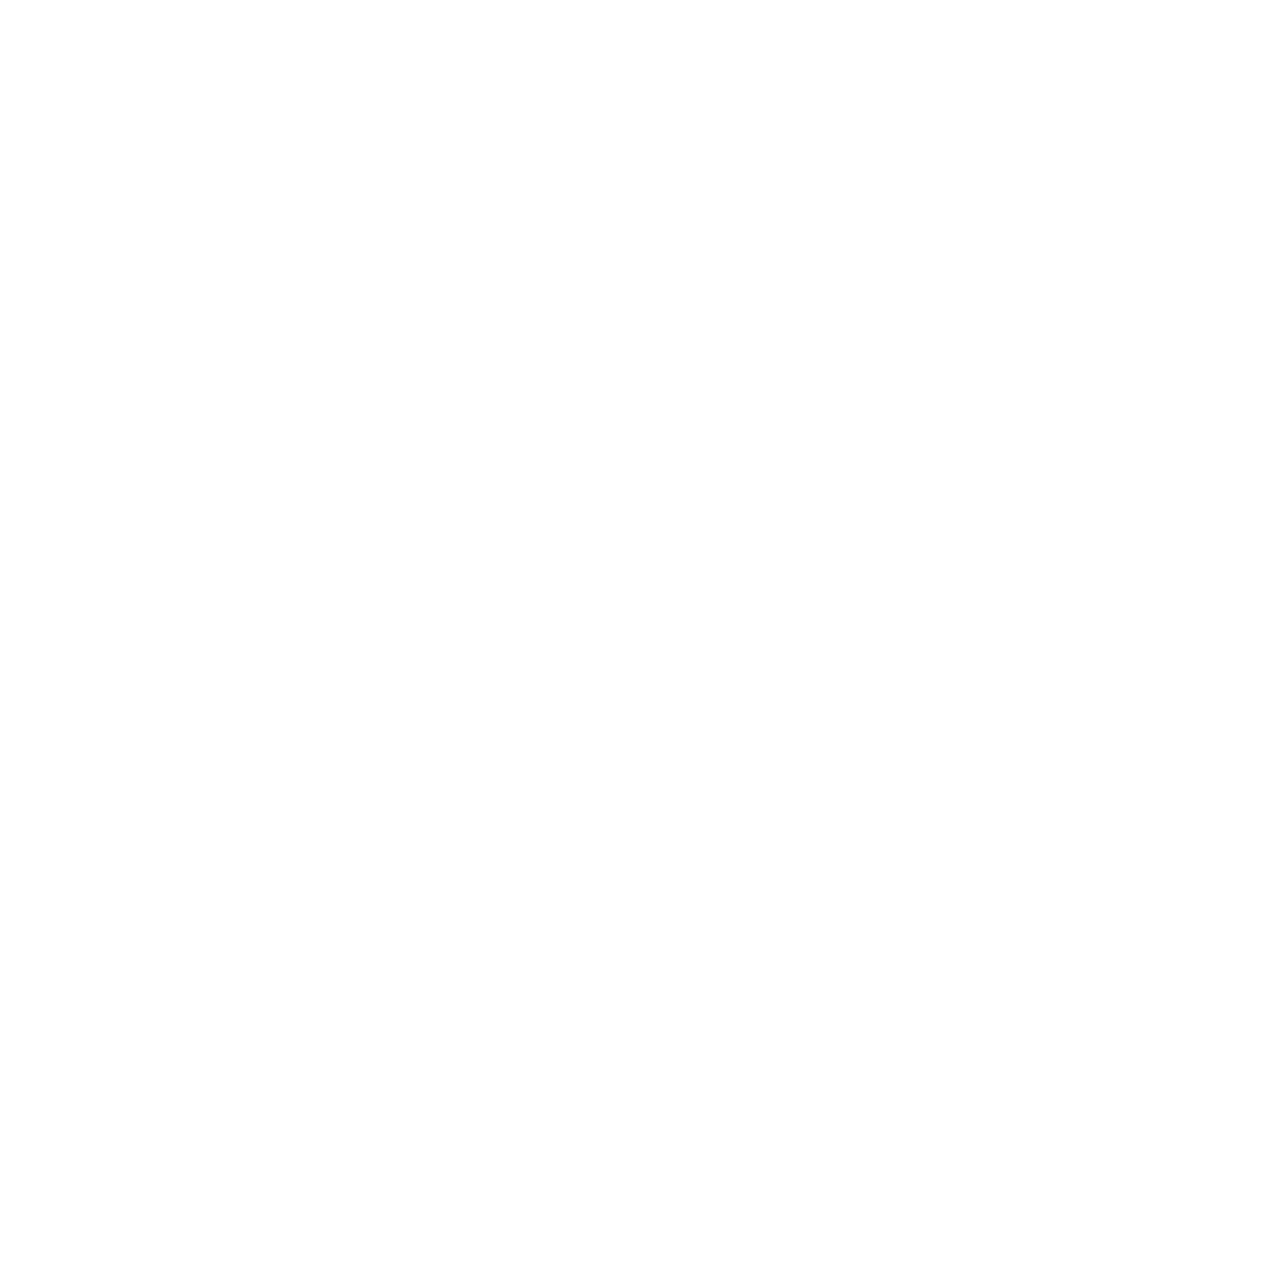 Black Mirror Recordings